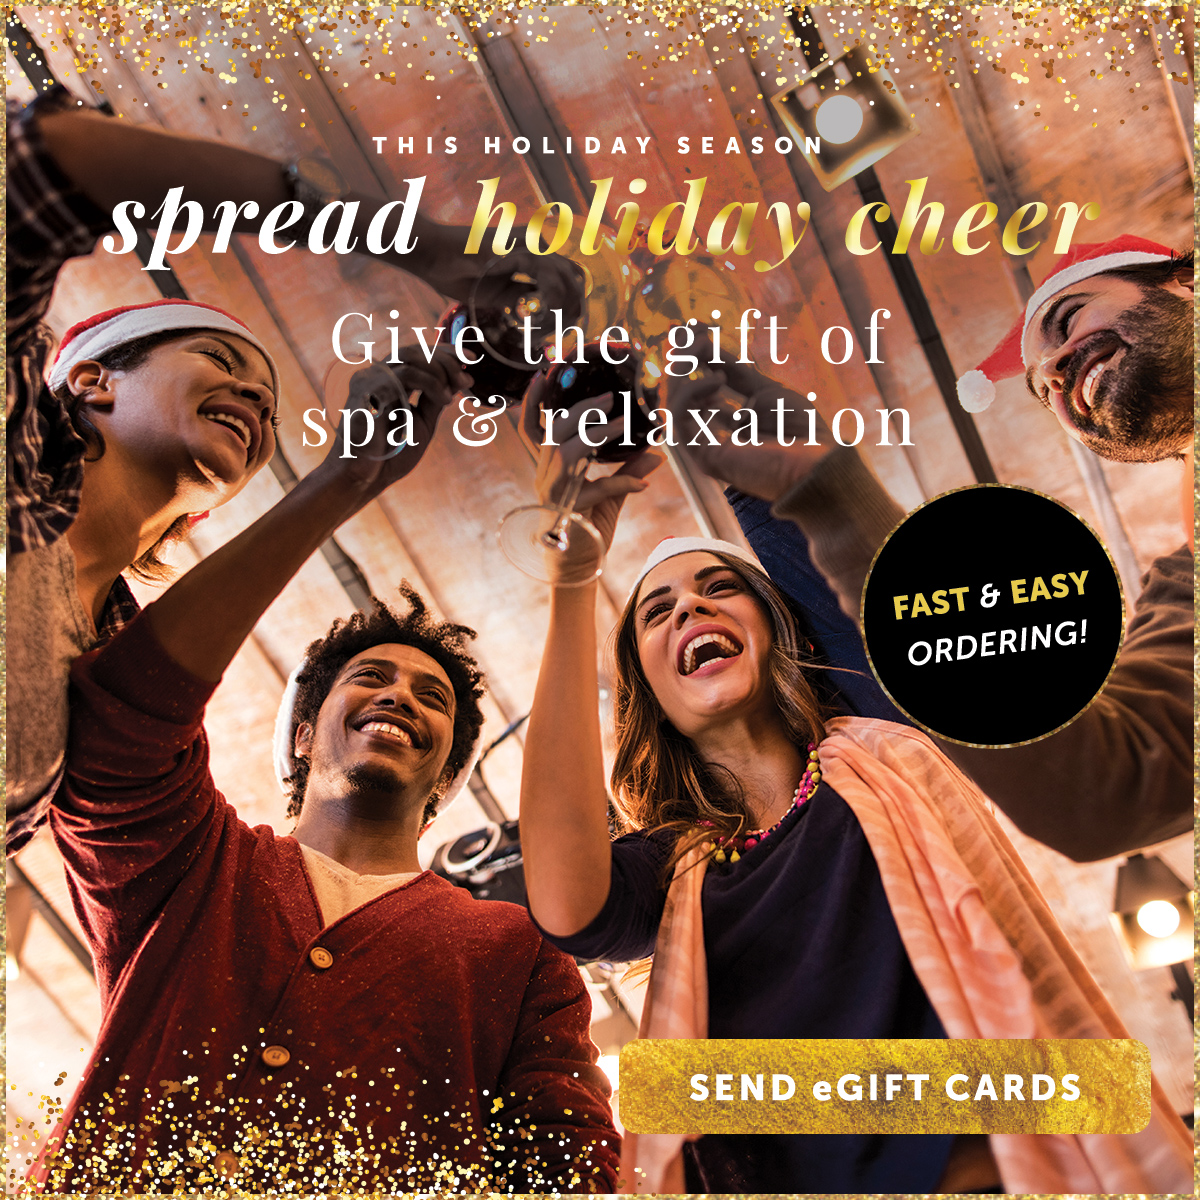 Spread Holiday Cheer. Shop Gift Cards